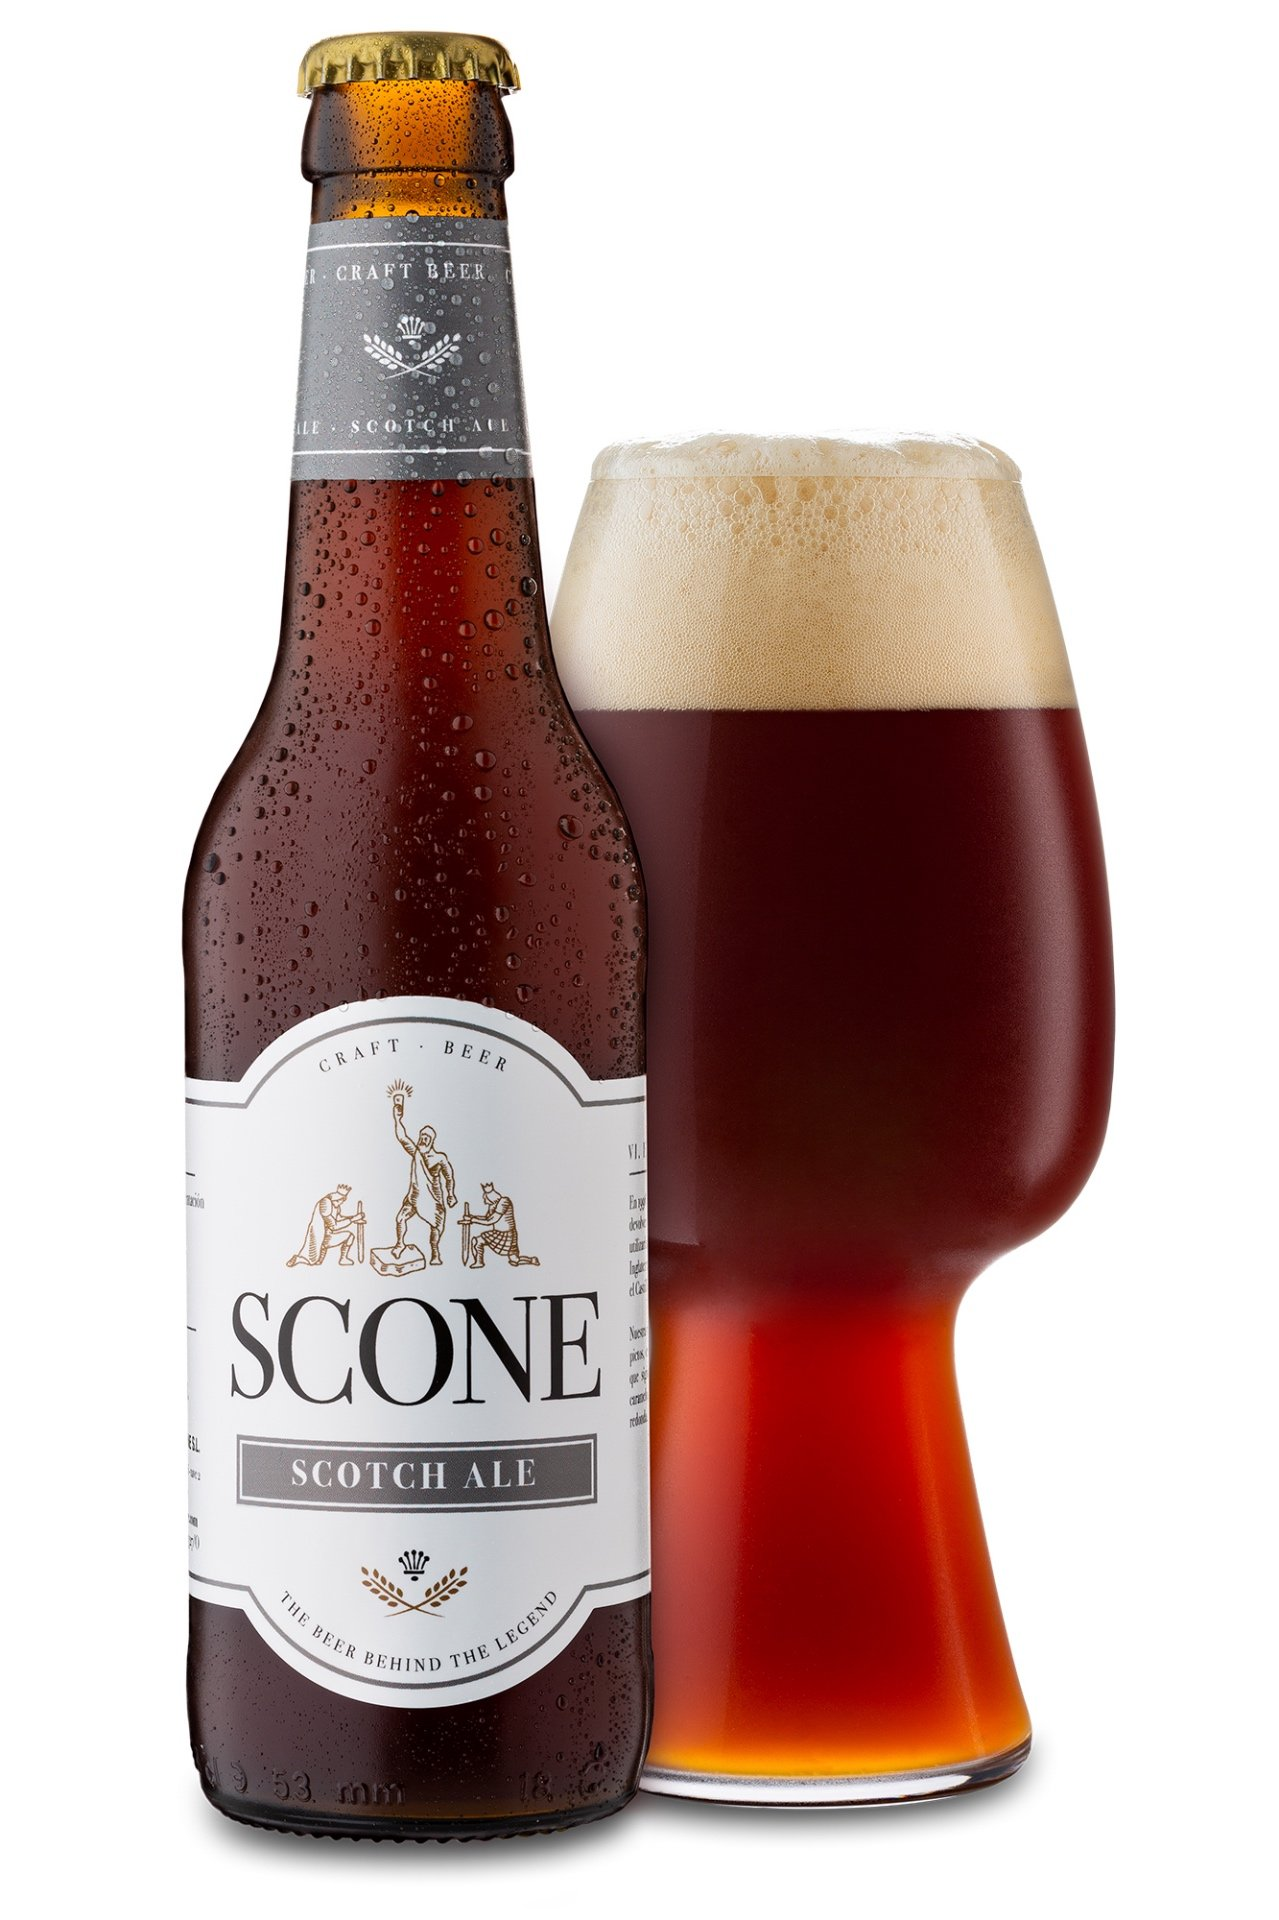 001 SCONE SCOTCH ALE BOTELLA Y COPA_Fotor